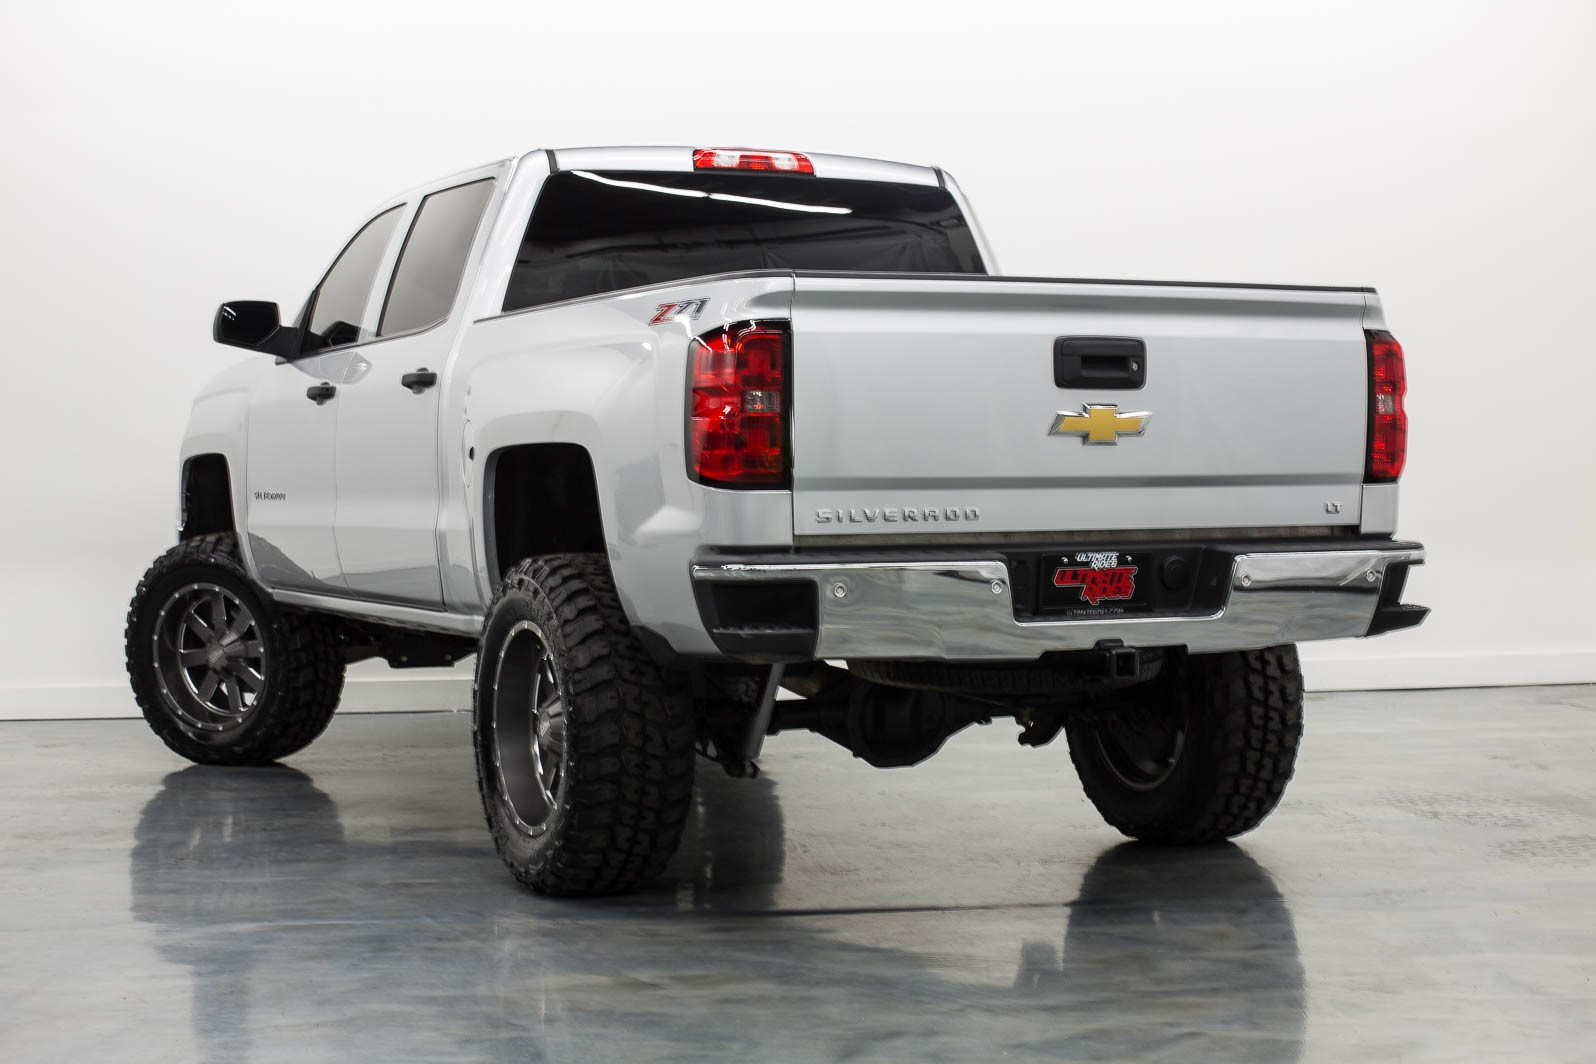 2014 chevrolet silverado crew cab lt z71 4wd ultimate rides. Black Bedroom Furniture Sets. Home Design Ideas